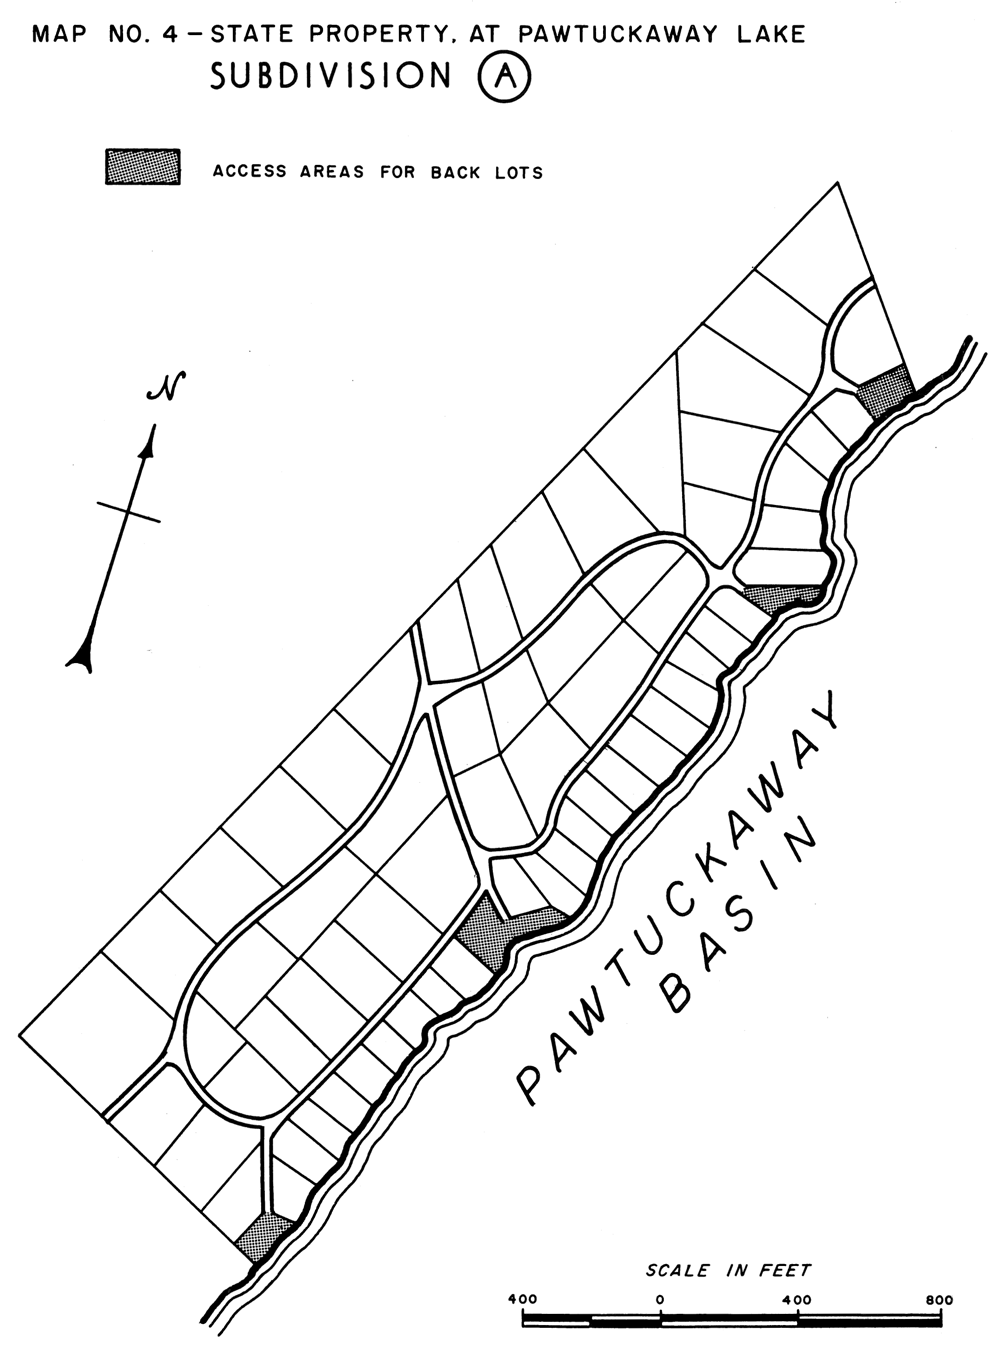 Figure 2. From A Plan for the Development of the State Property at Pawtuckaway Lake, New Hampshire State Planning and Development Commission